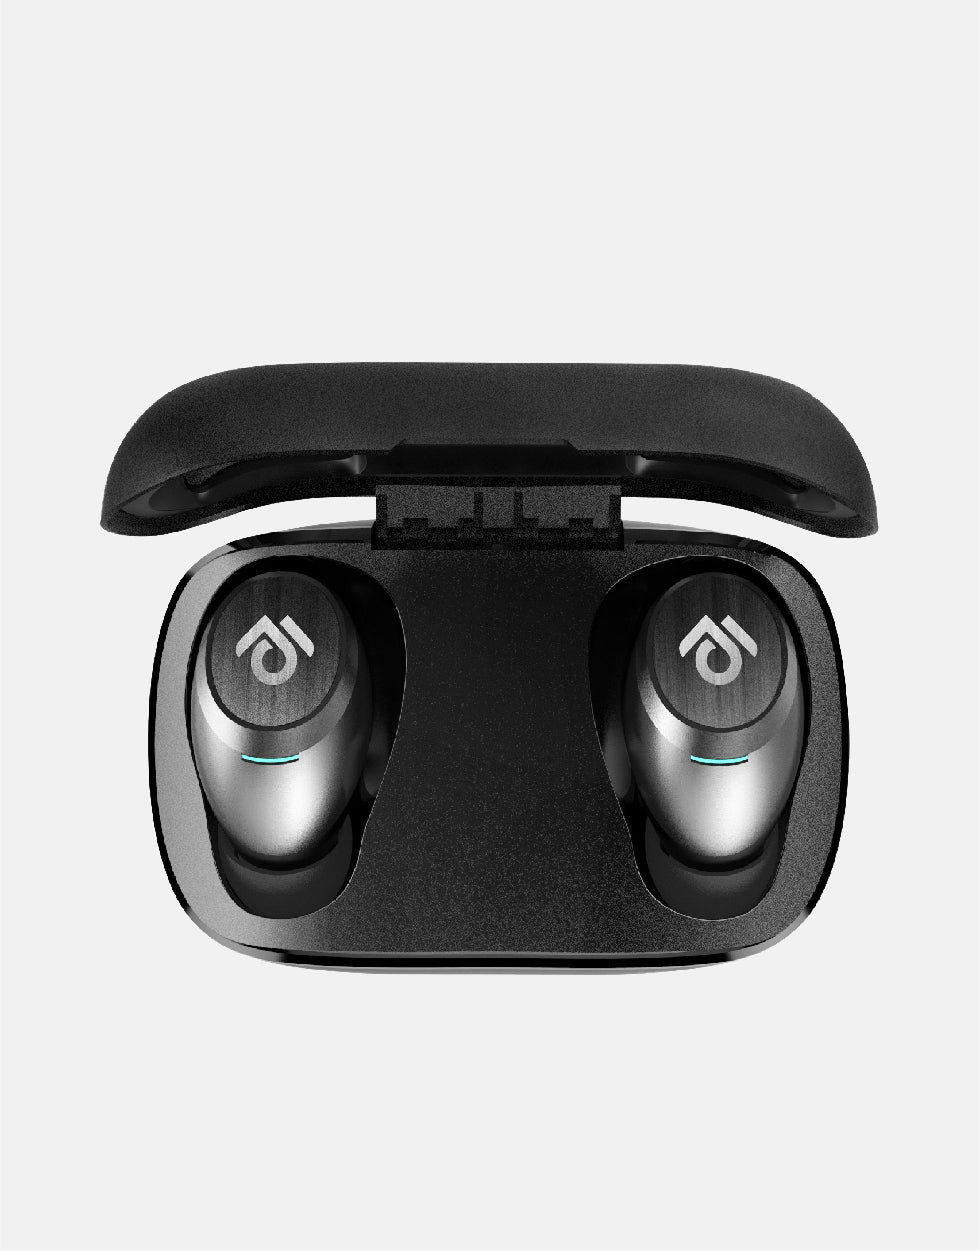 Molife Play 705 True Wireless Earbuds